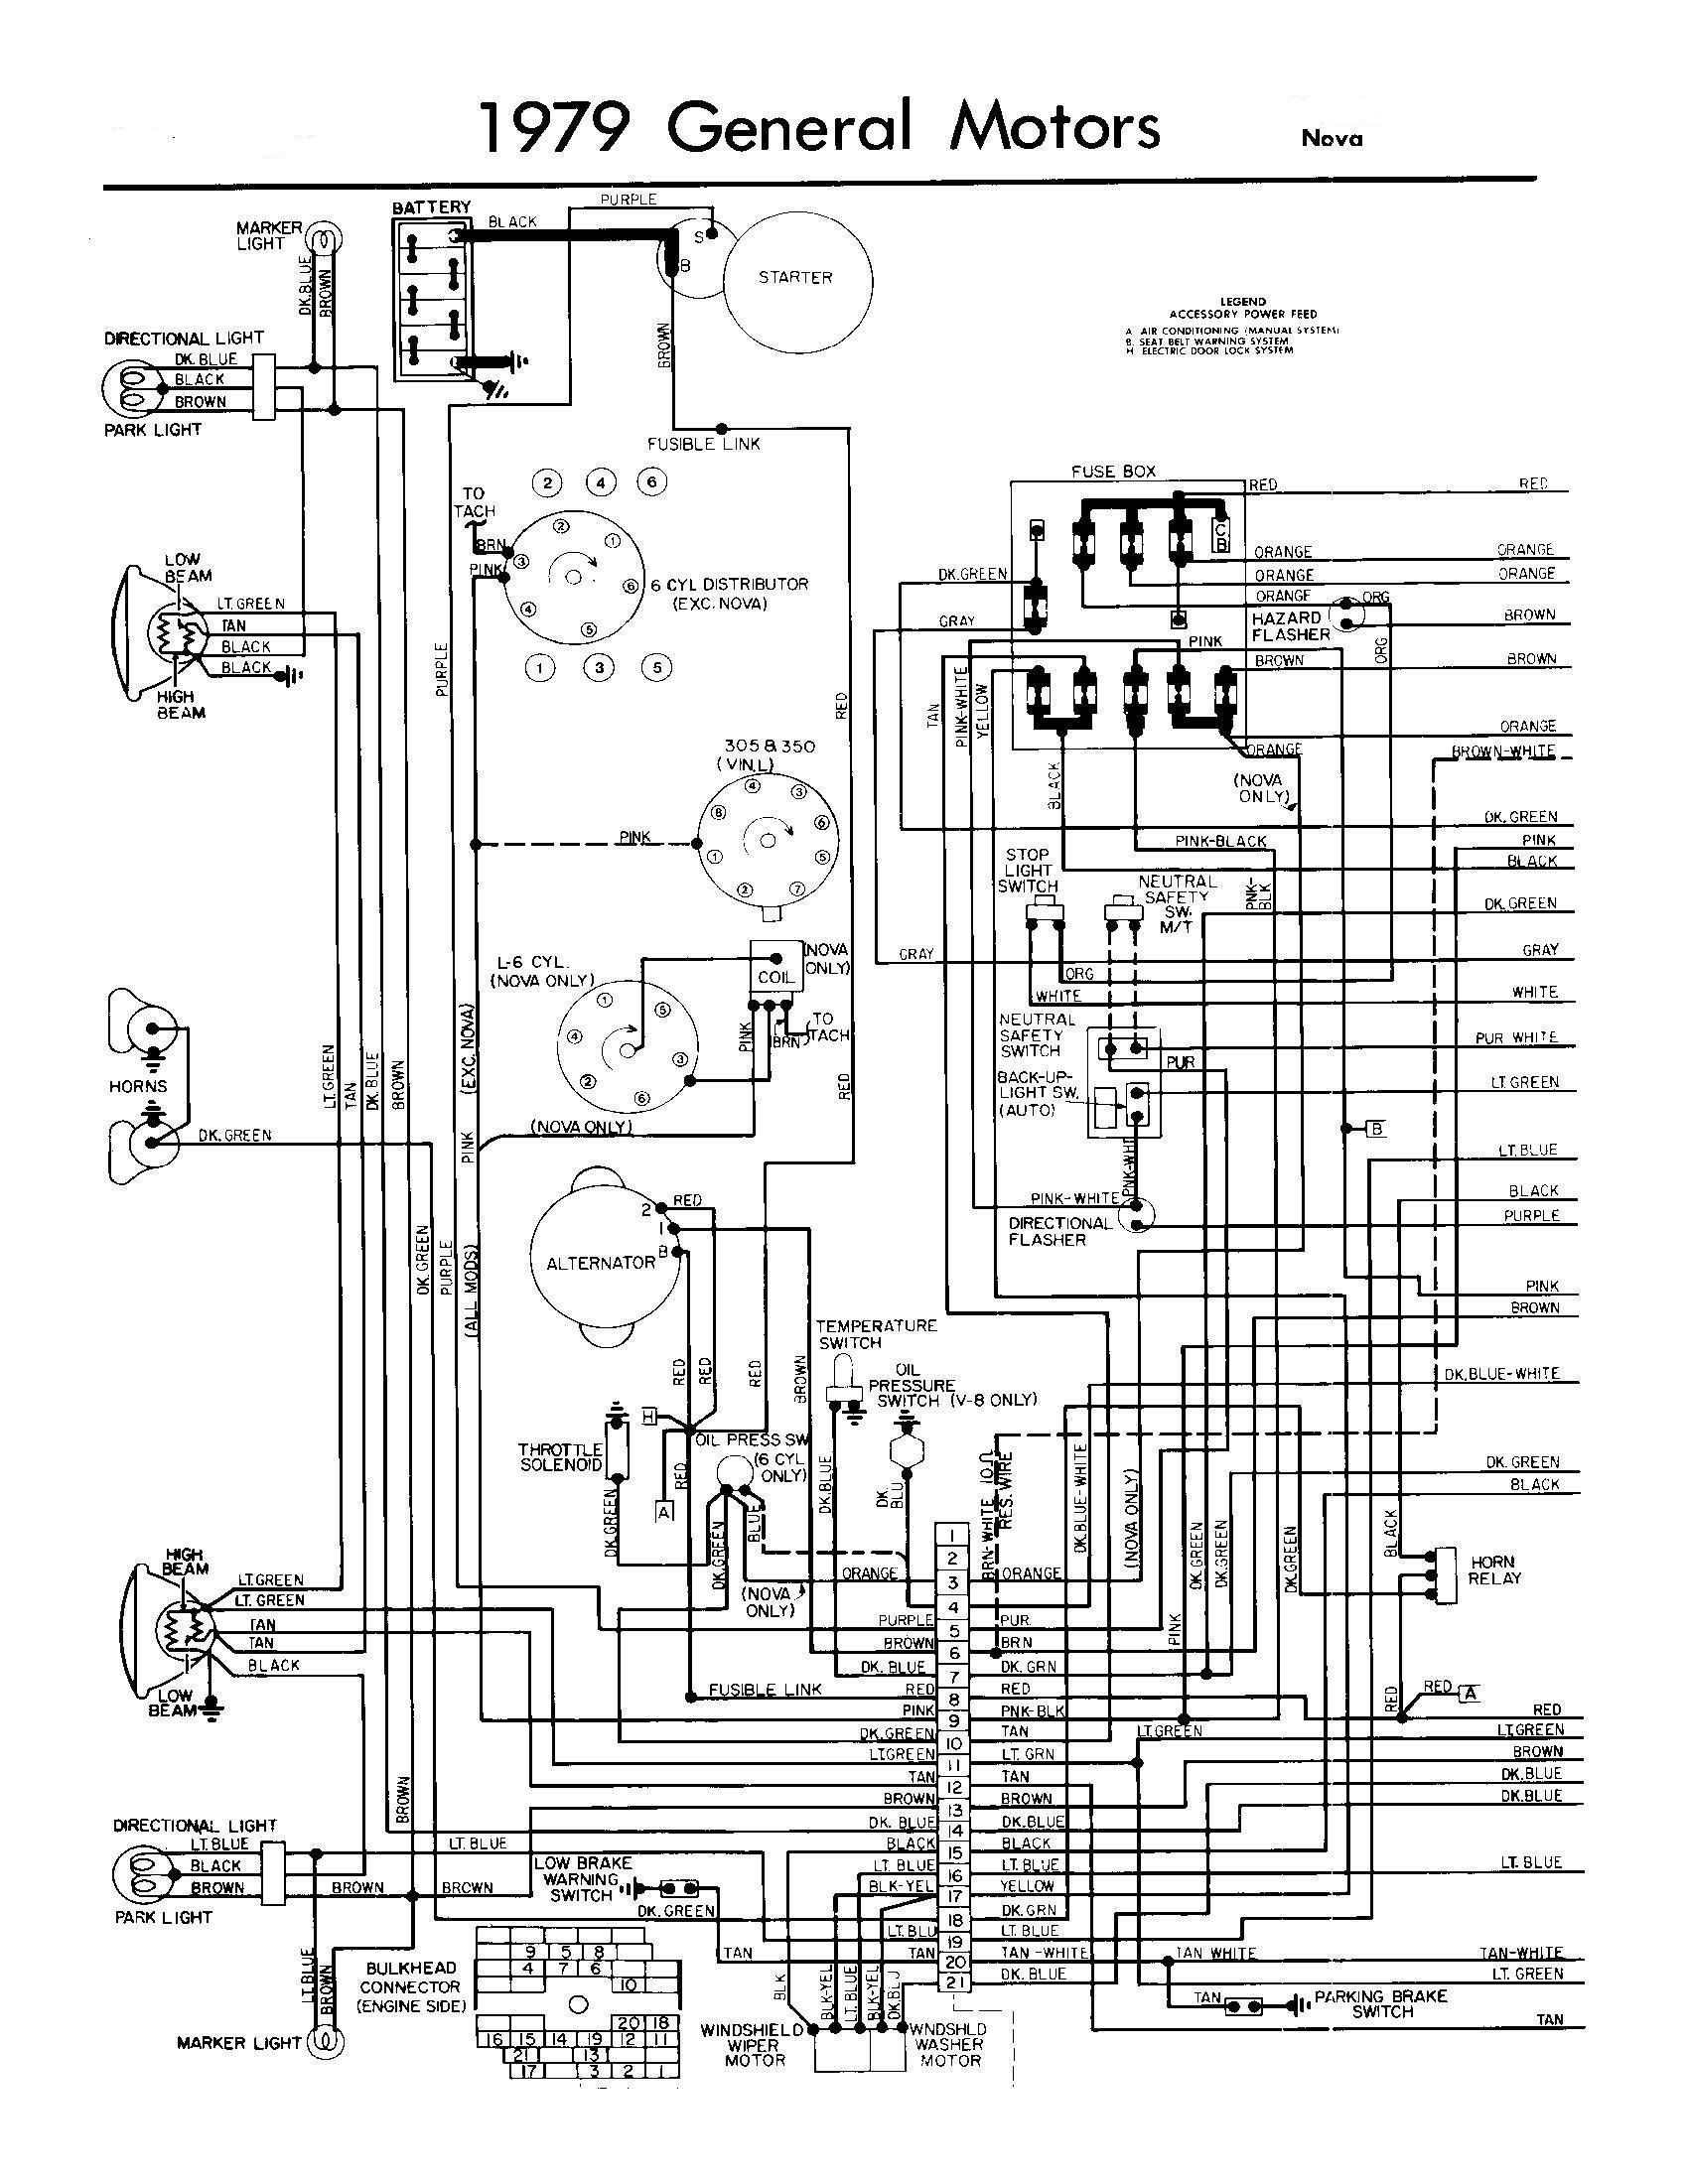 New Wiring Diagram For Club Car Starter Generator Diagram Diagramsample Diagramtemplate Wiringdiagram Diagram Chevy Trucks 1979 Chevy Truck 79 Chevy Truck